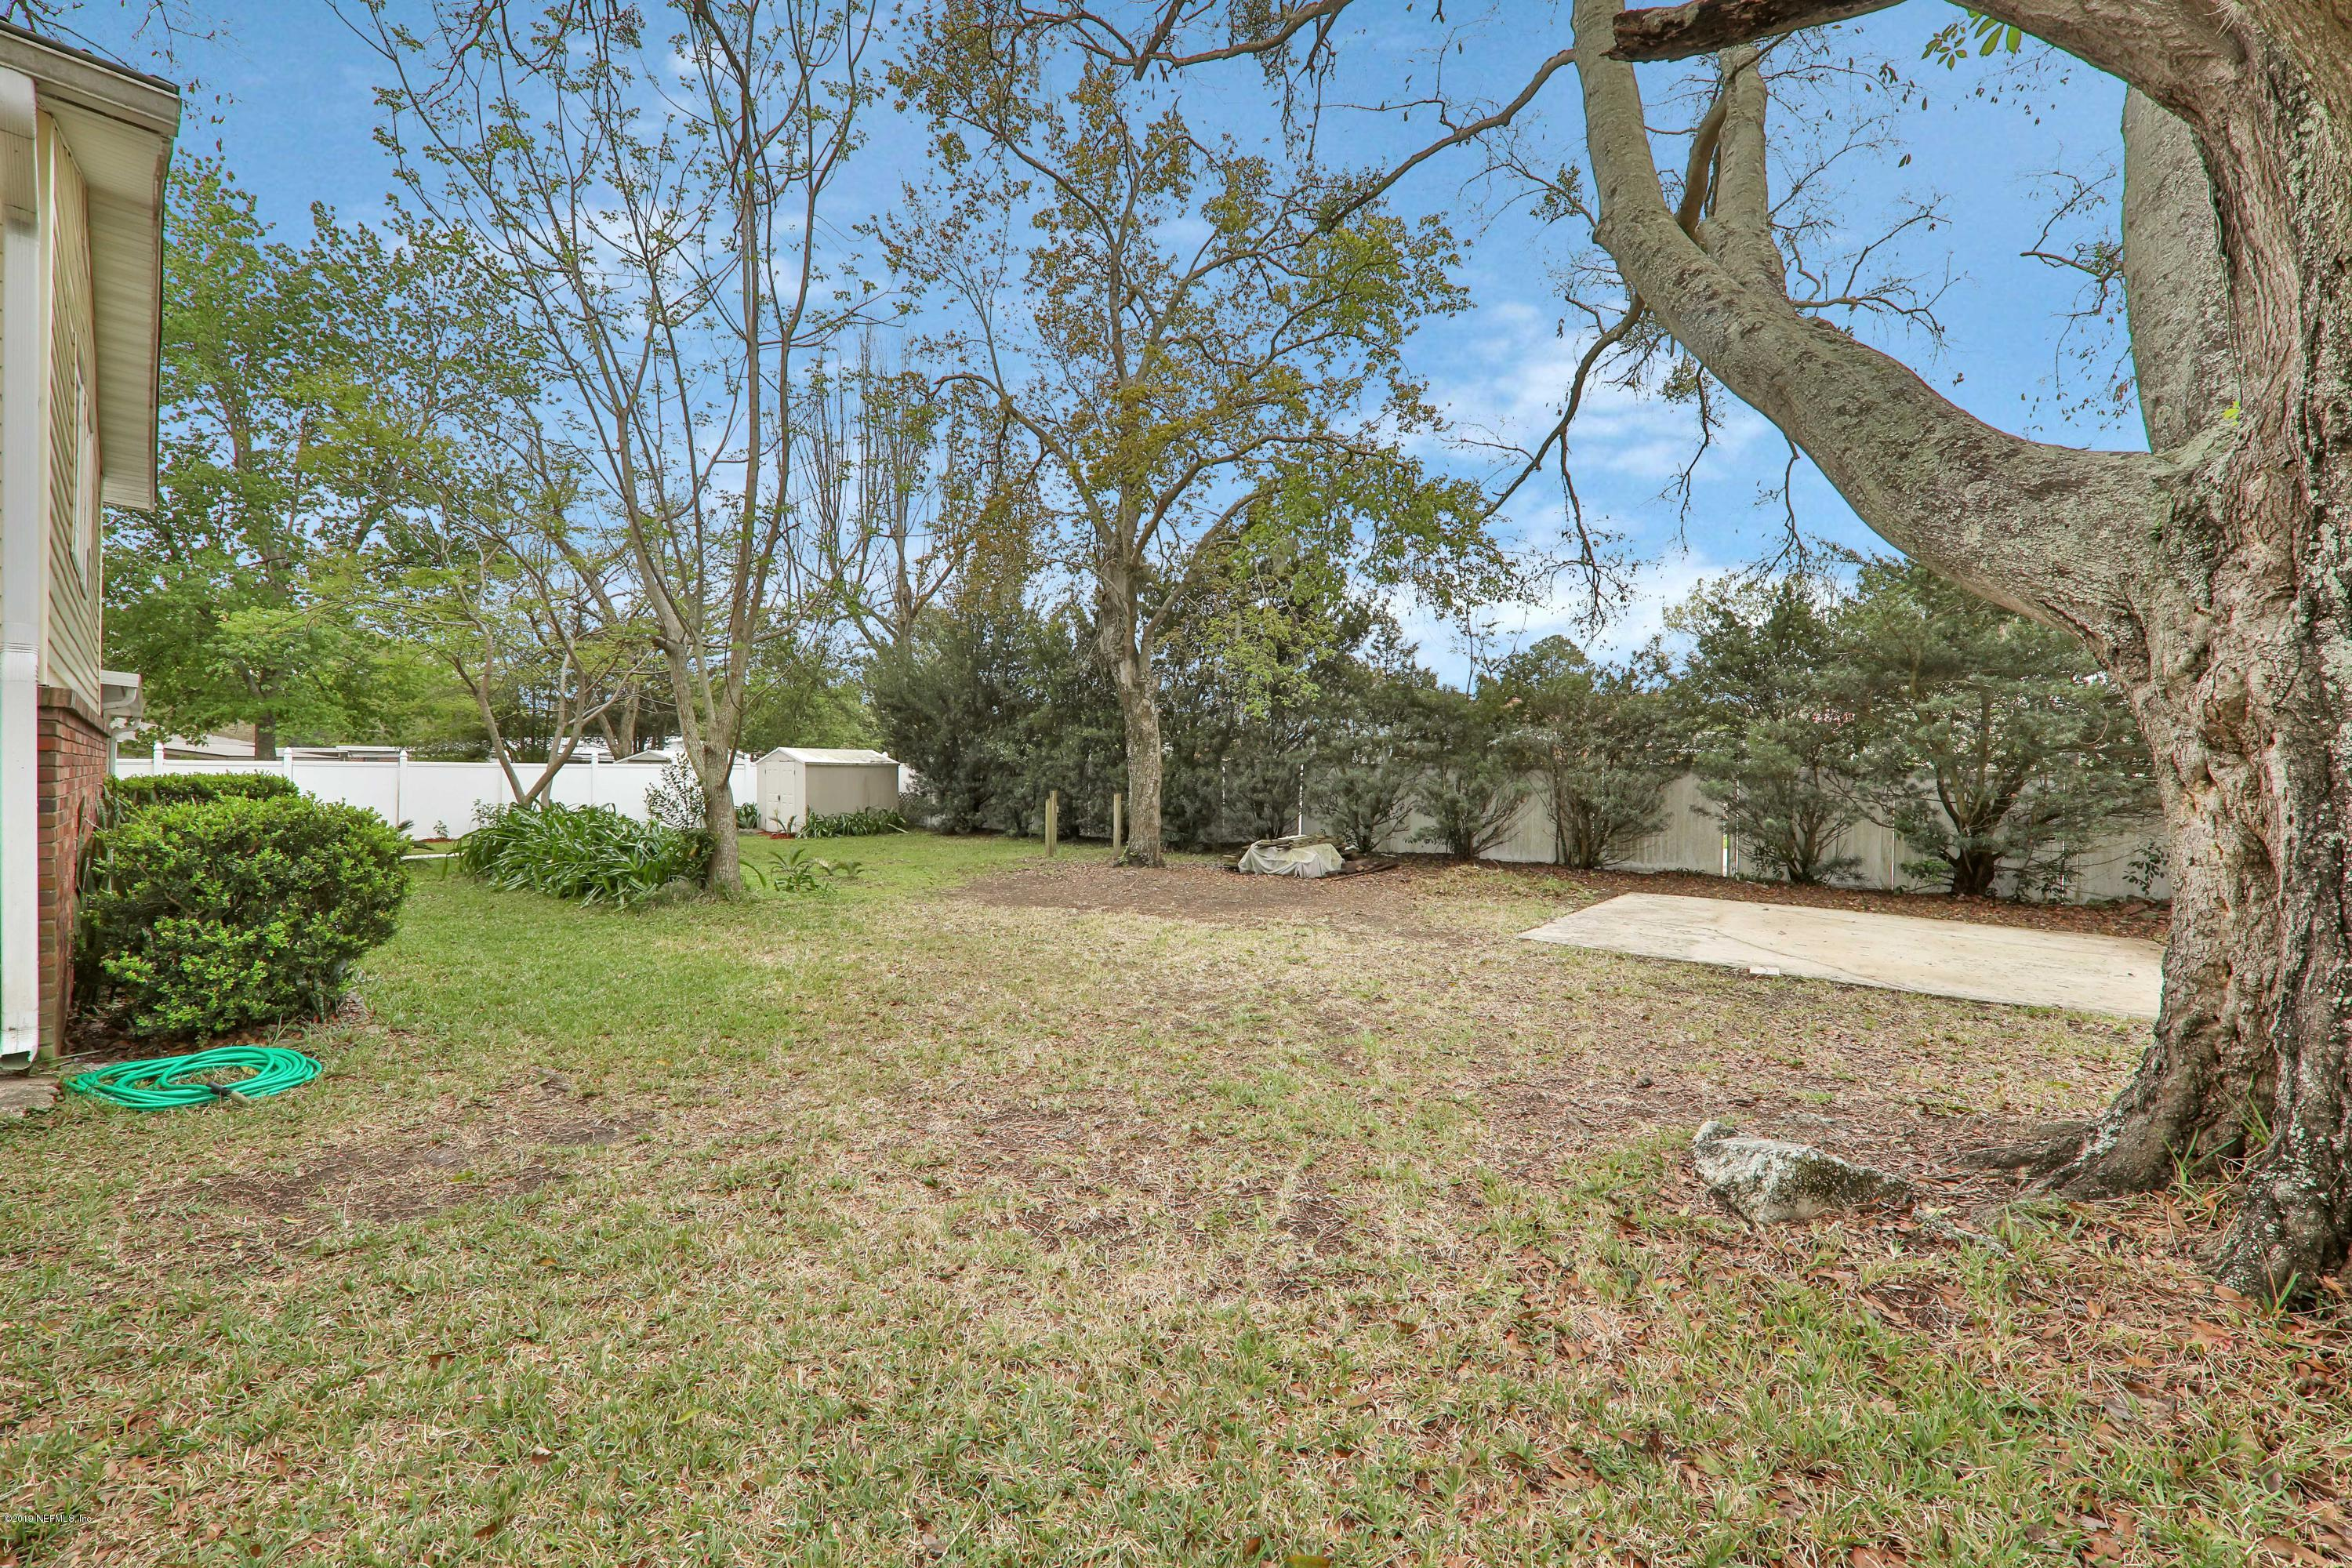 6820 BOGATA, JACKSONVILLE, FLORIDA 32210, 5 Bedrooms Bedrooms, ,2 BathroomsBathrooms,Residential - single family,For sale,BOGATA,998048